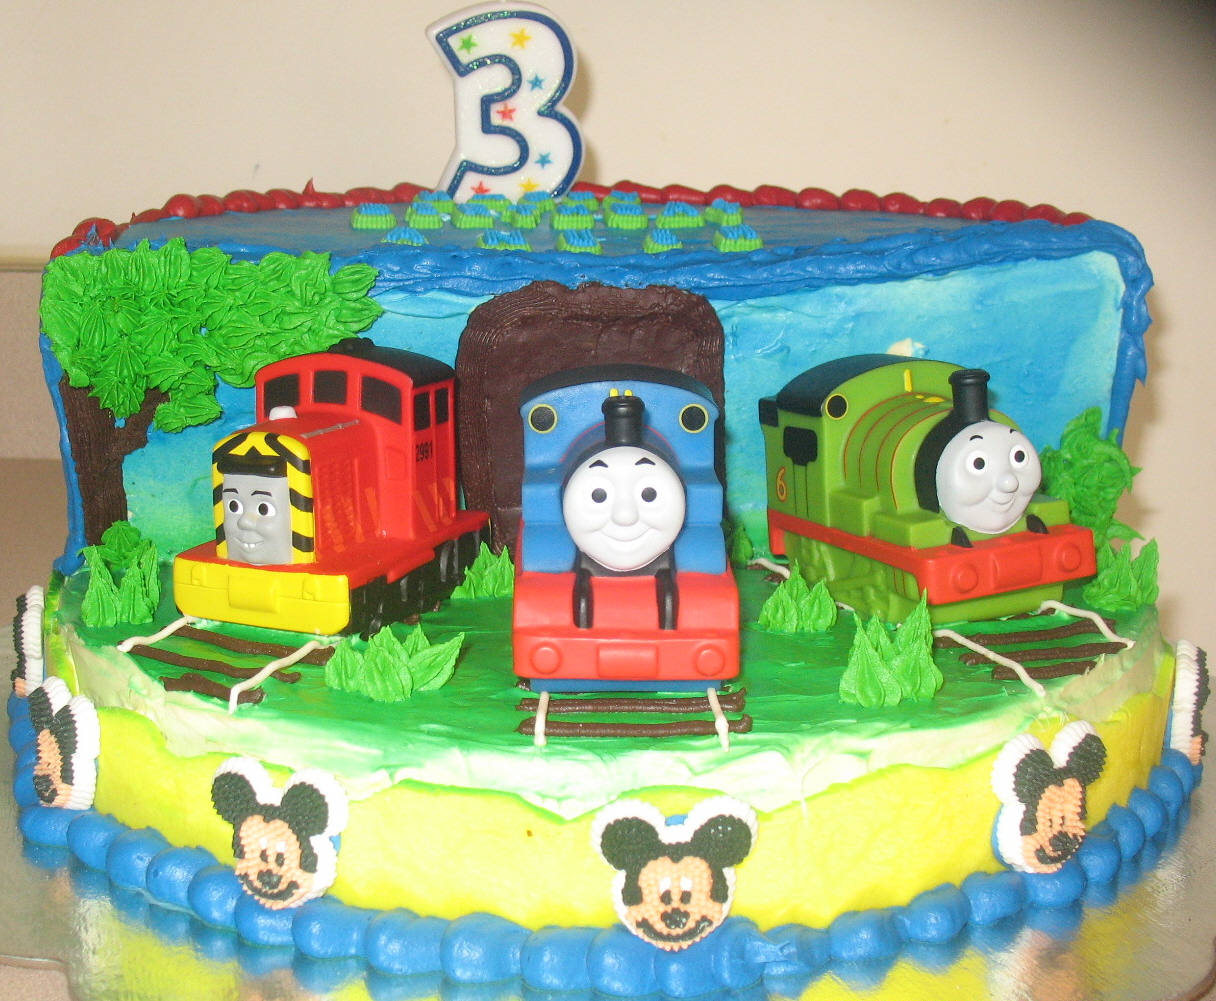 ANU CAKES N BAKES Anushs 3rd Birthday Cake Thomas and Friends